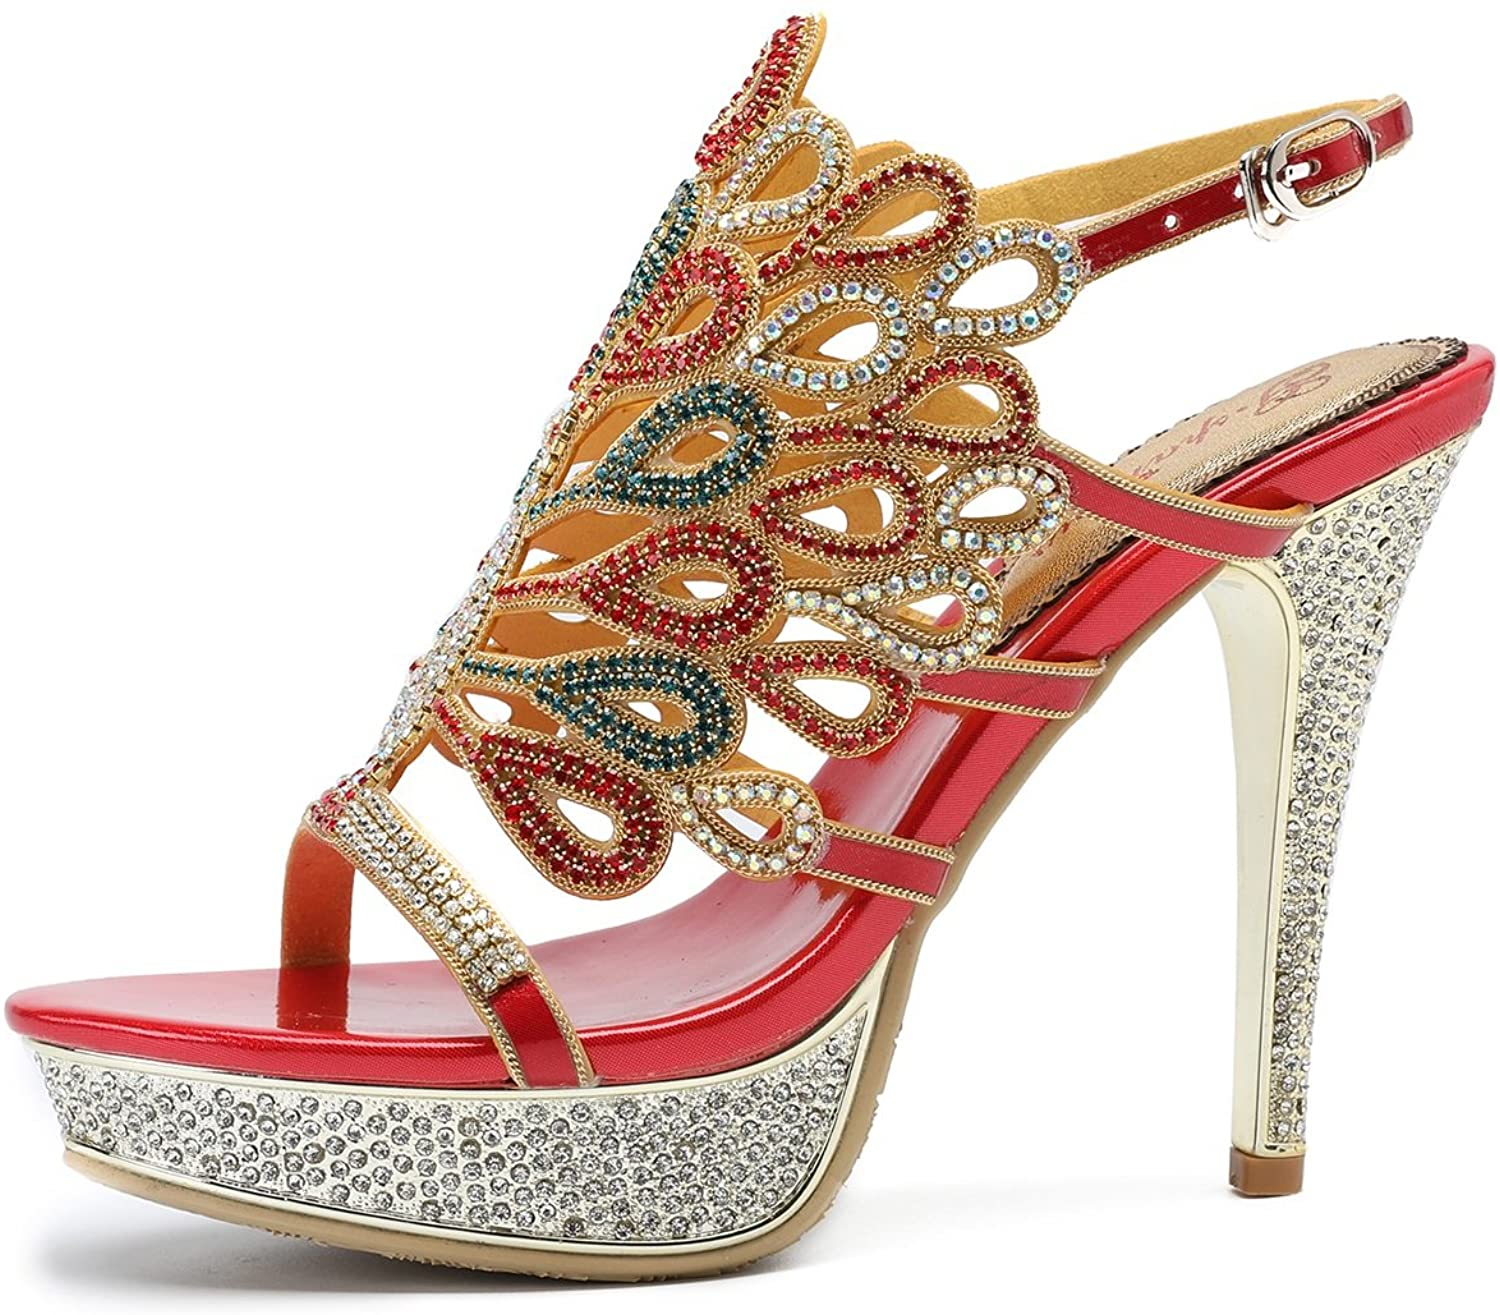 Women's shoes Rhinestone Leather Summer Fall Comfort Sandals Stiletto Heel Peep Toe for Wedding Party & Evening Red